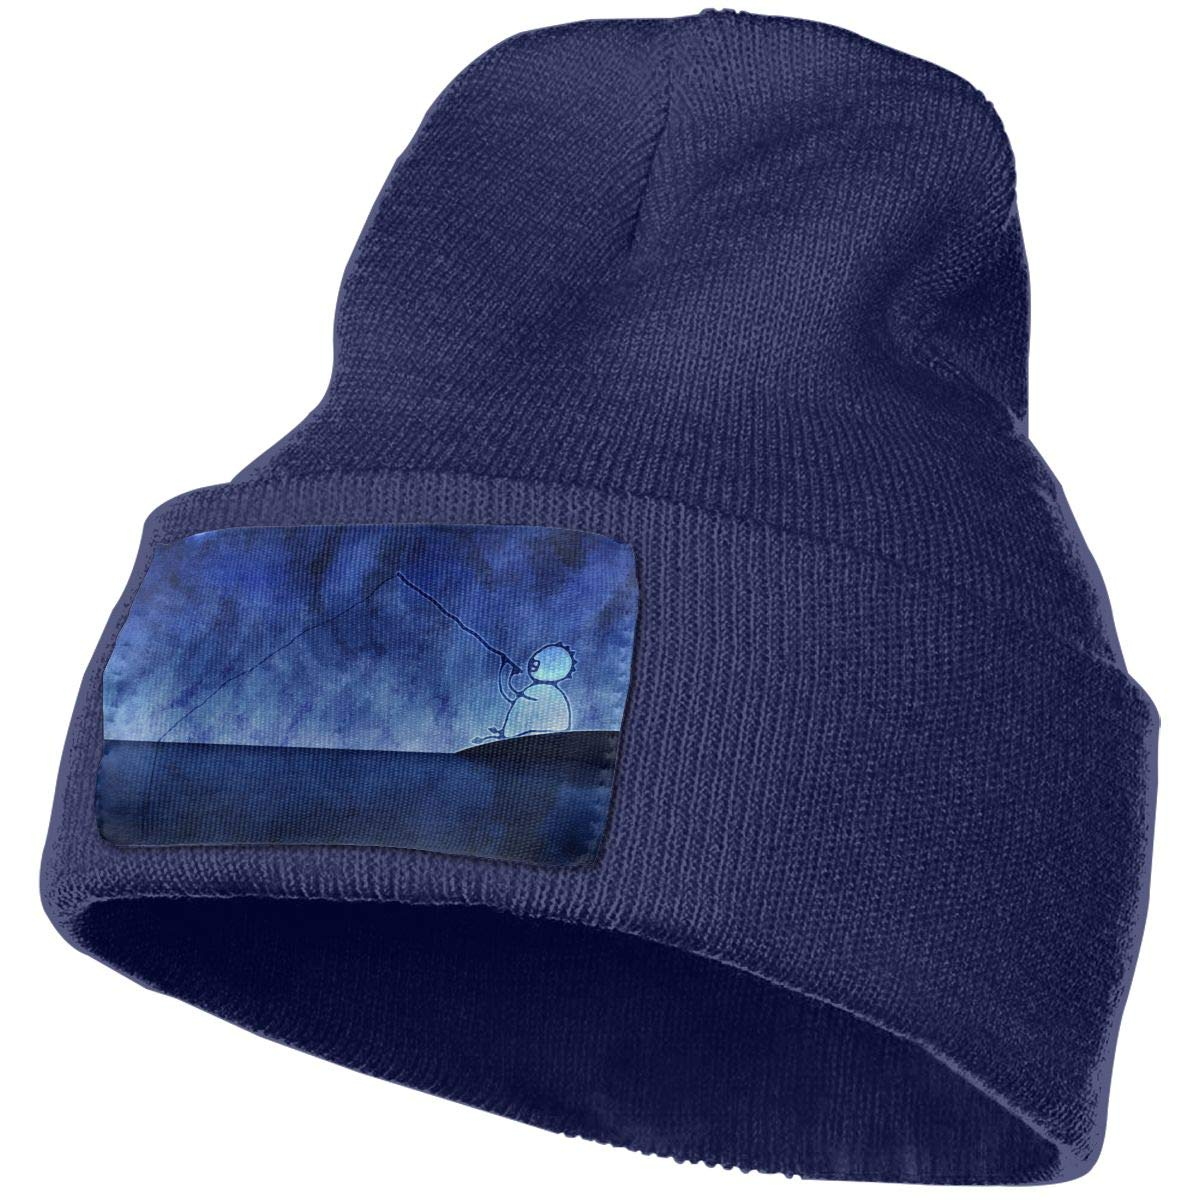 JimHappy Fishing Hat for Men and Women Winter Warm Hats Knit Slouchy Thick Skull Cap Black